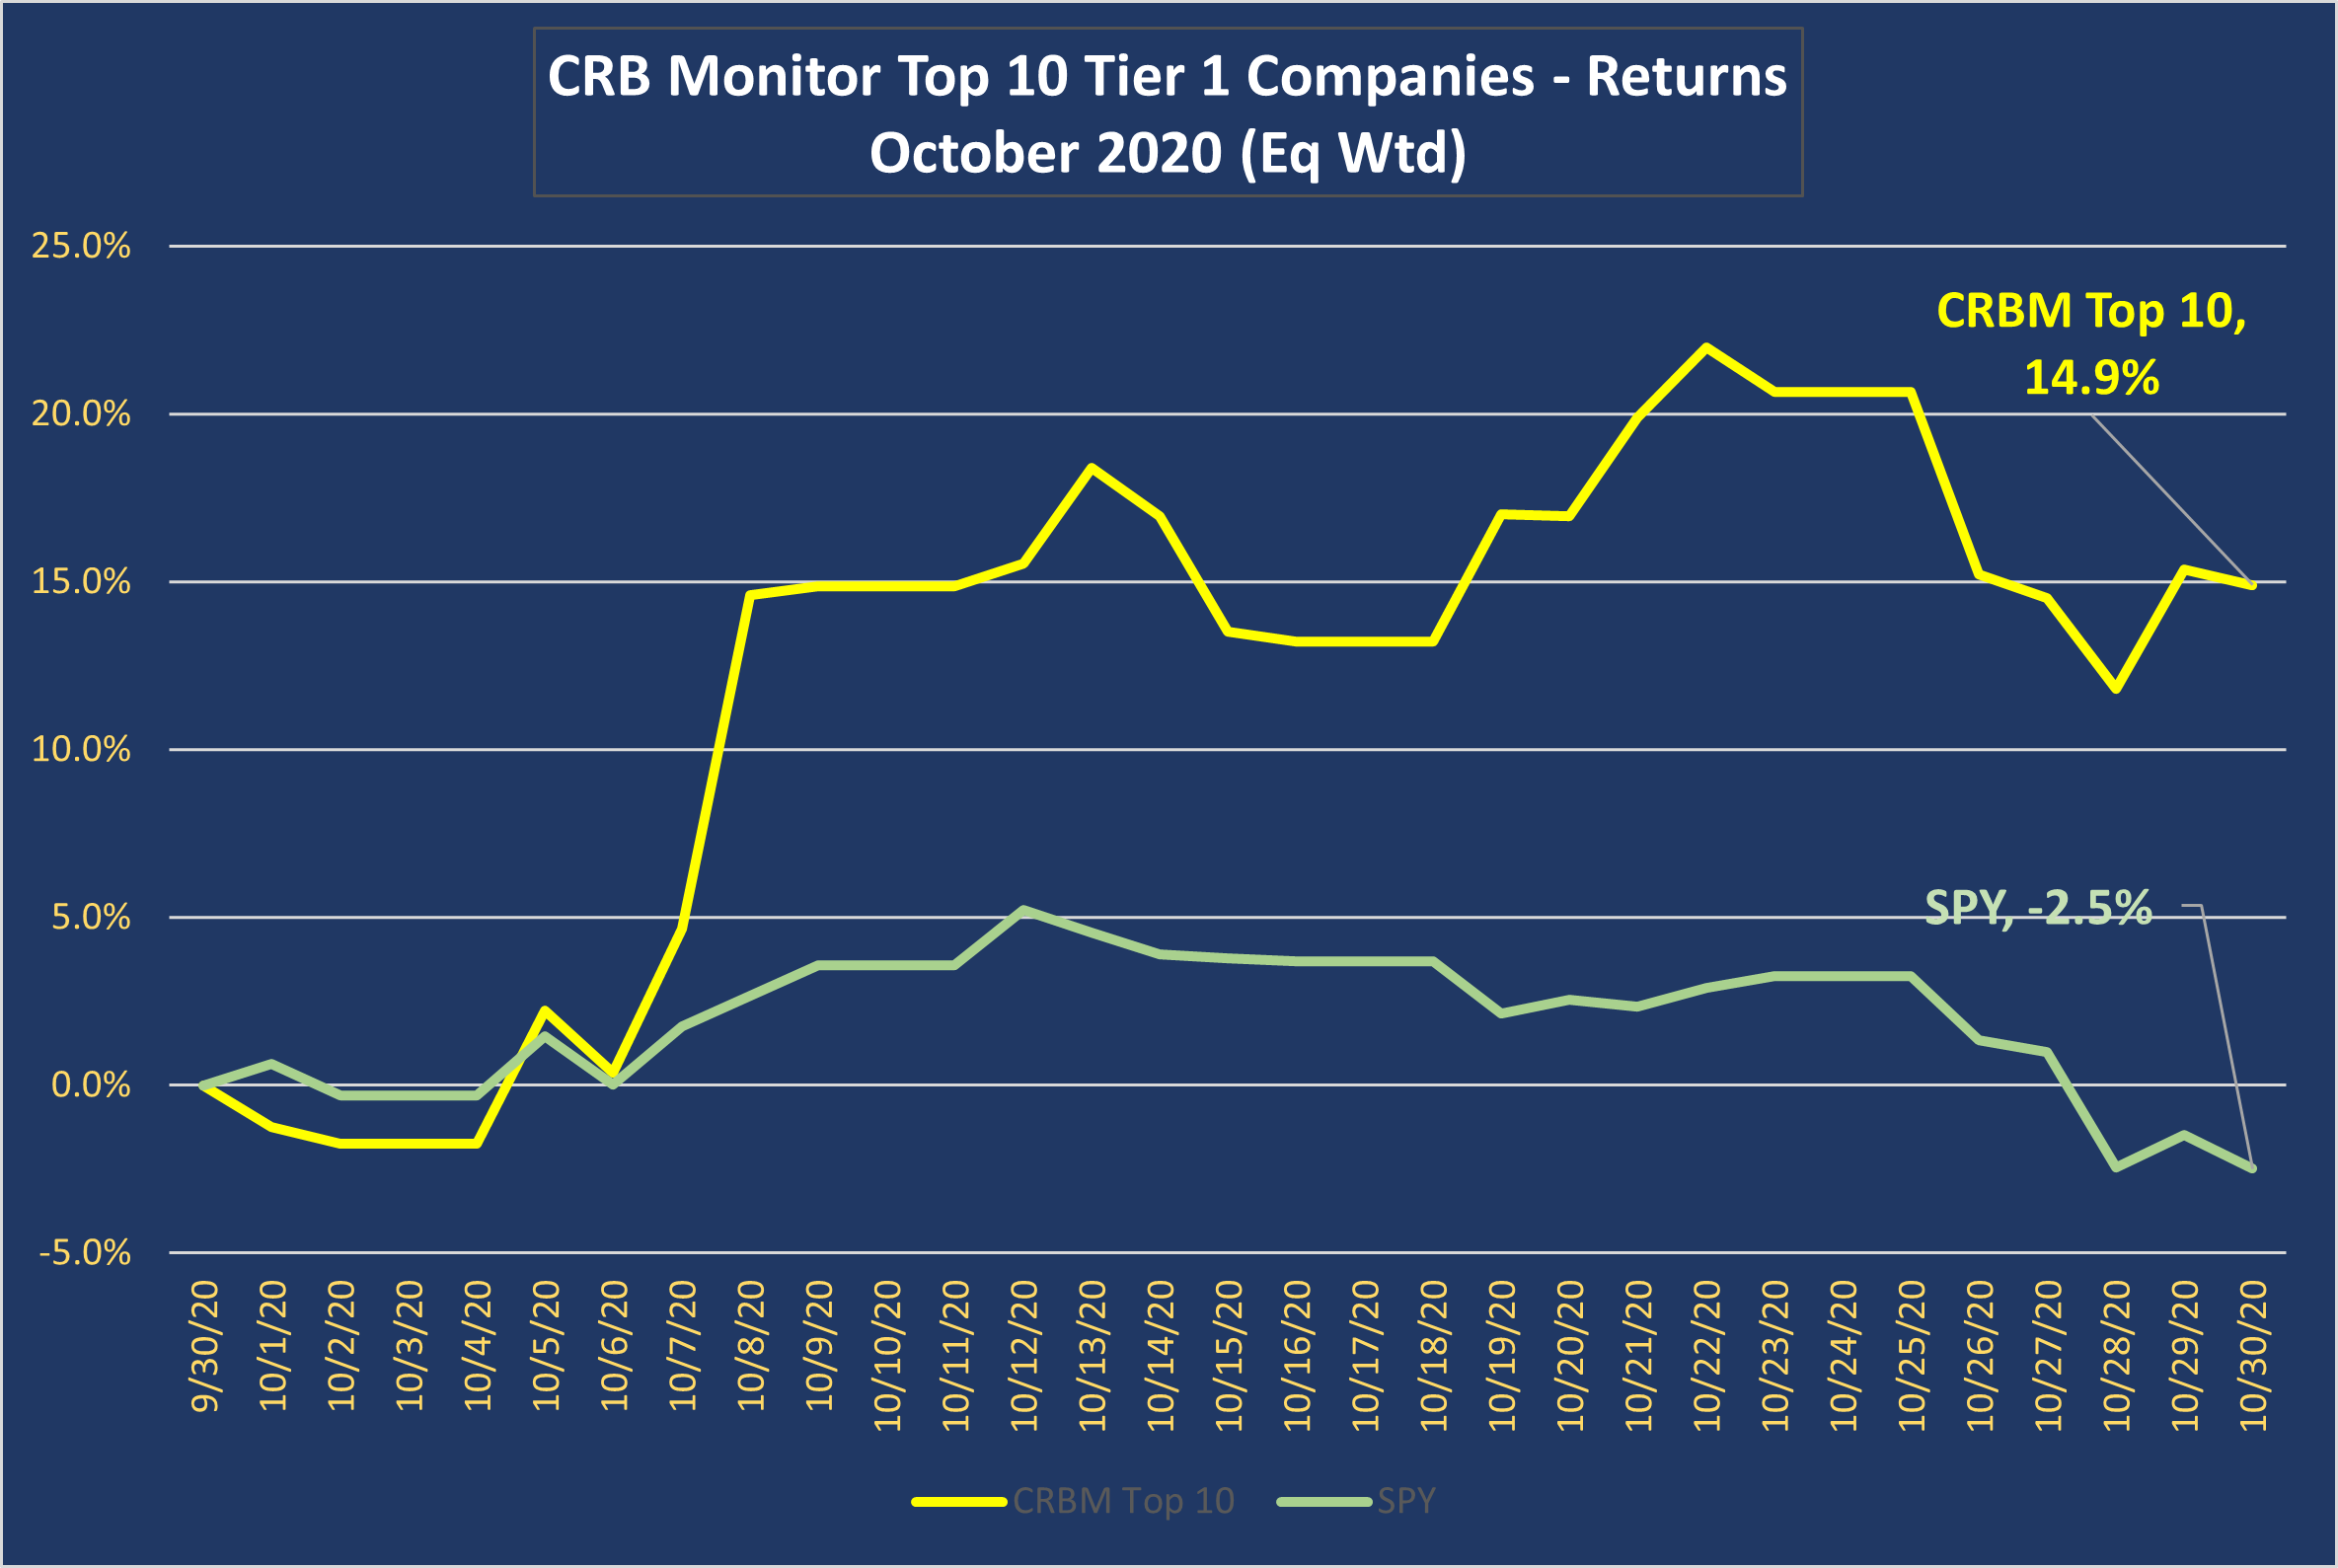 CRB Monitor Top 10 Tier 1 Companies -